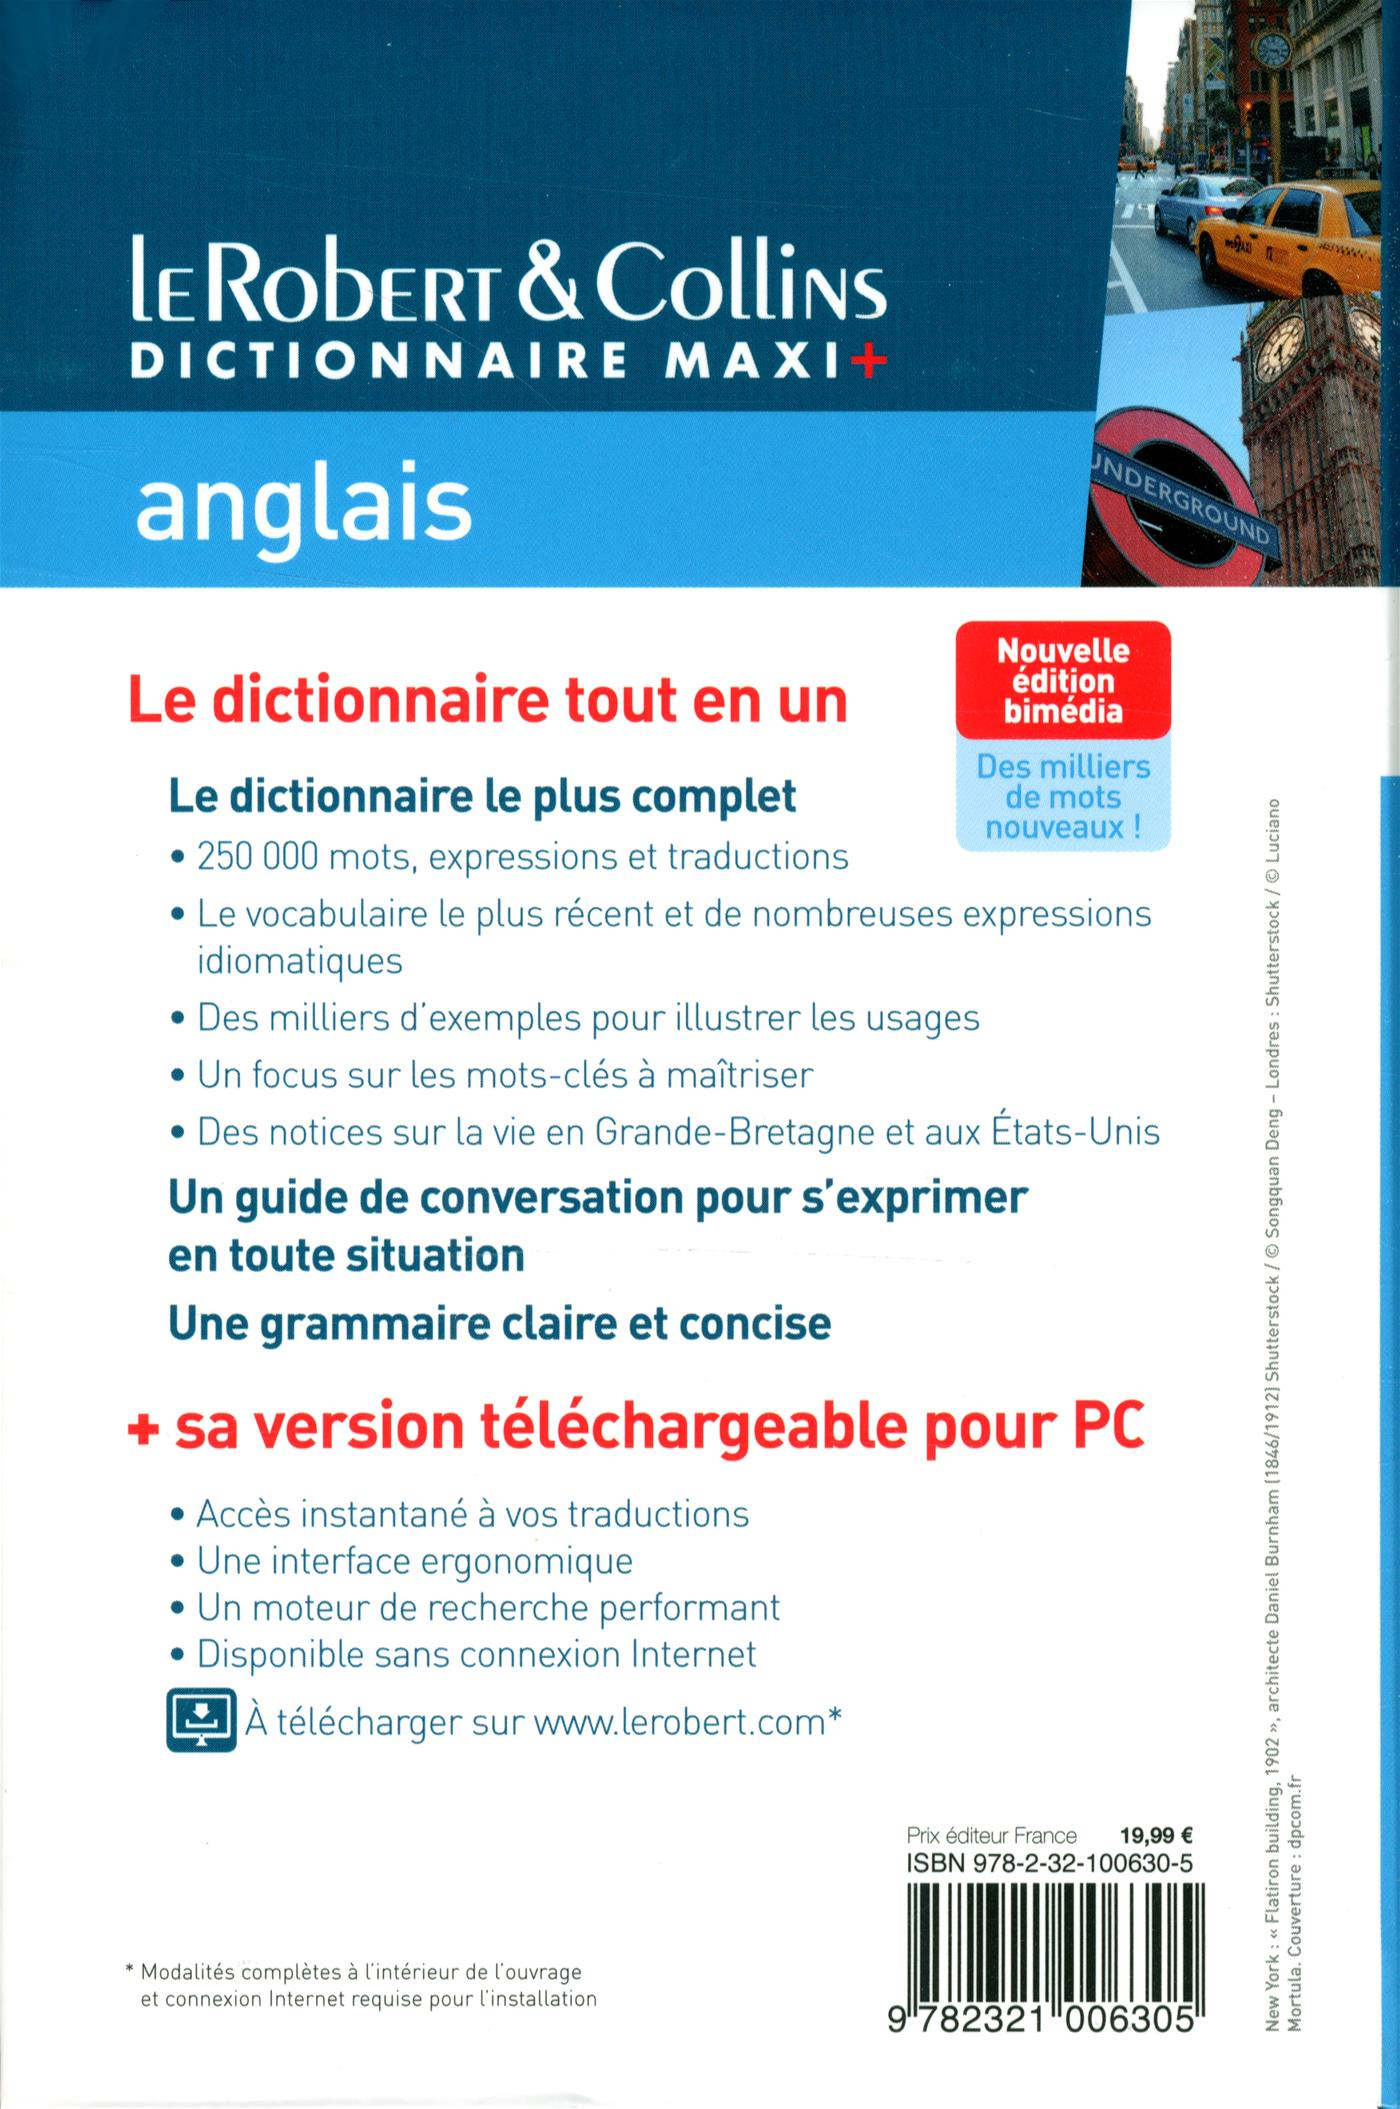 traduction anglais fran u00c3 u00a7ais performant